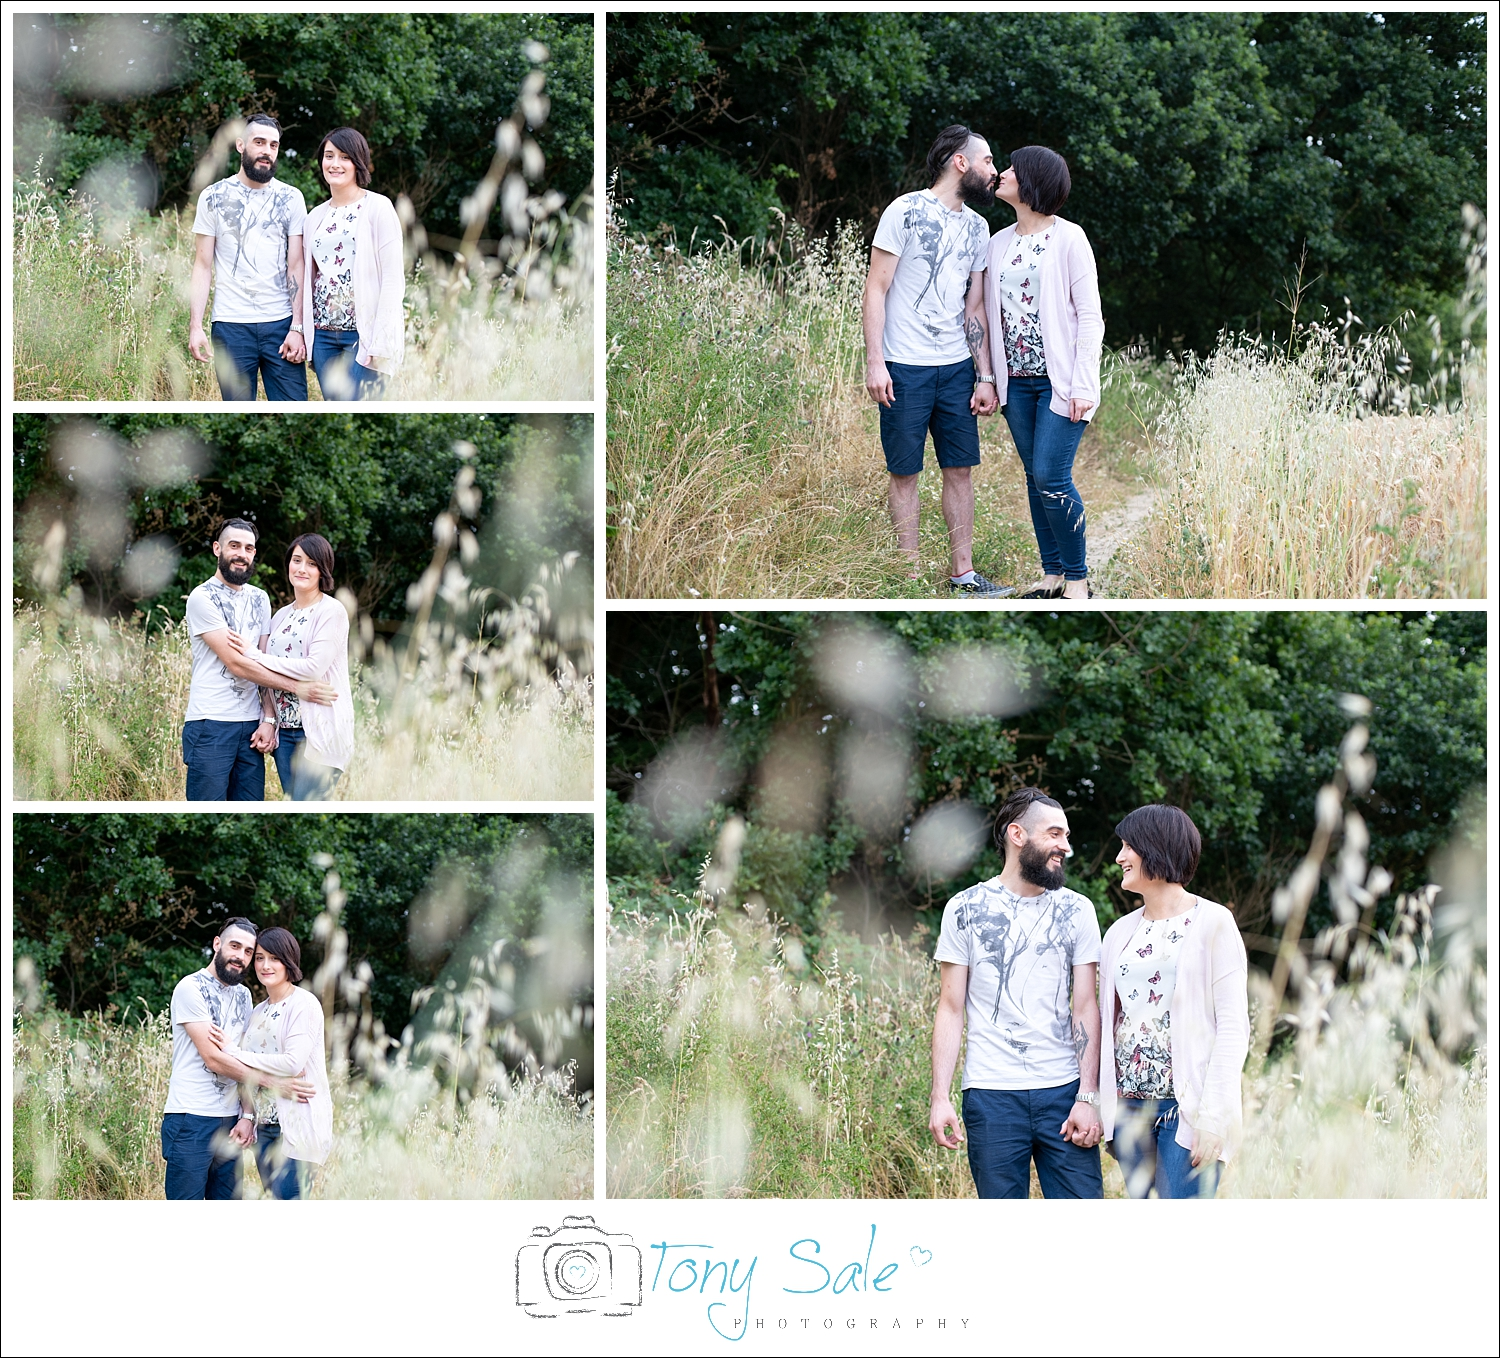 pre wedding photoshoot Gosfield by Tony Sale Photography